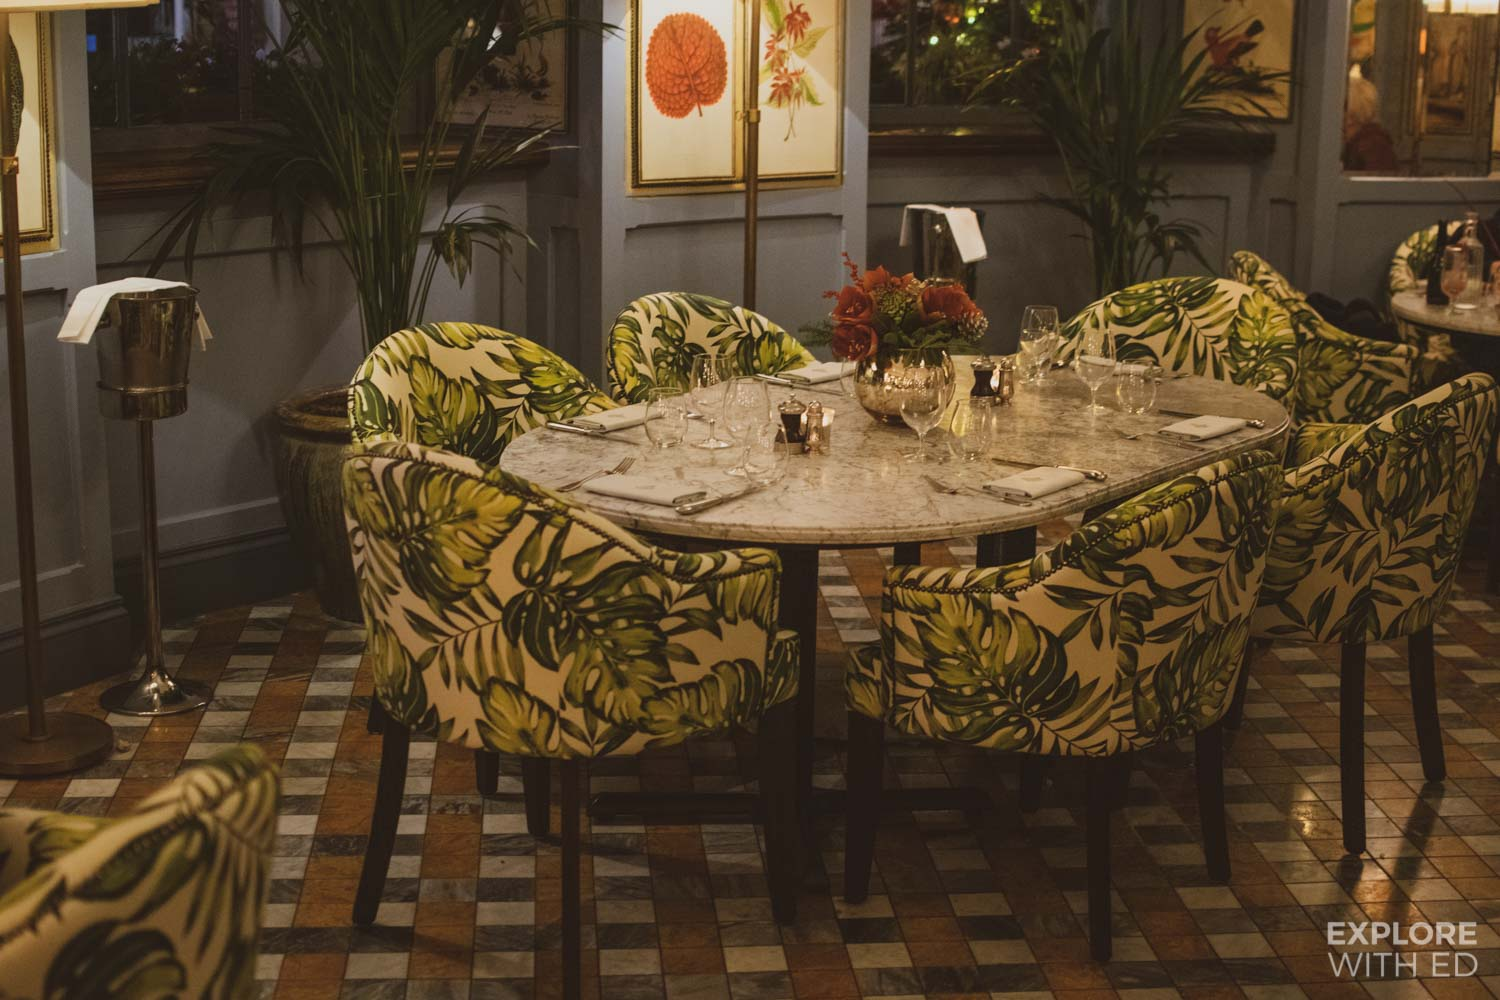 The Ivy Bath Brasserie dining area with patterned seating and marble tables